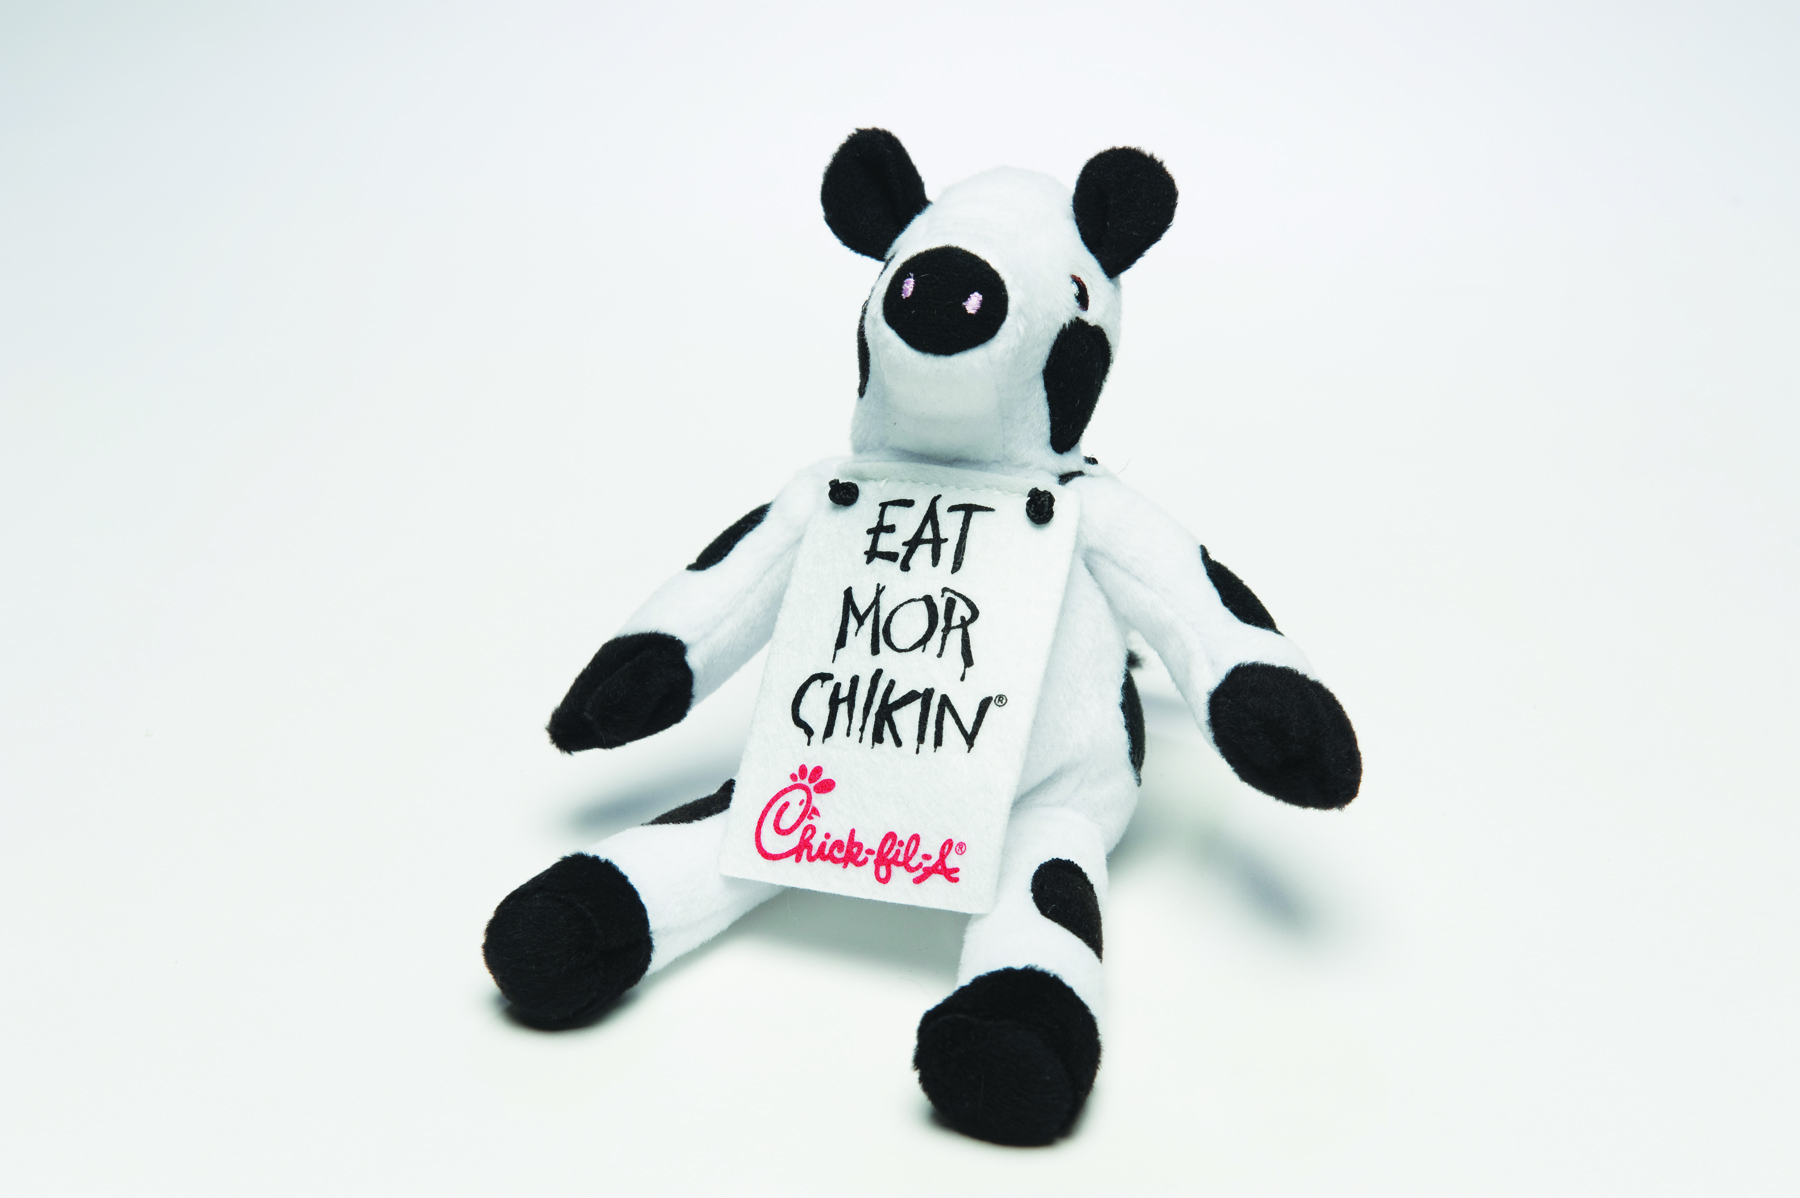 photo regarding Eat More Chicken Sign Printable identified as 20th Anniversary of the Consume Mor Chikin Cow Marketing campaign Chick